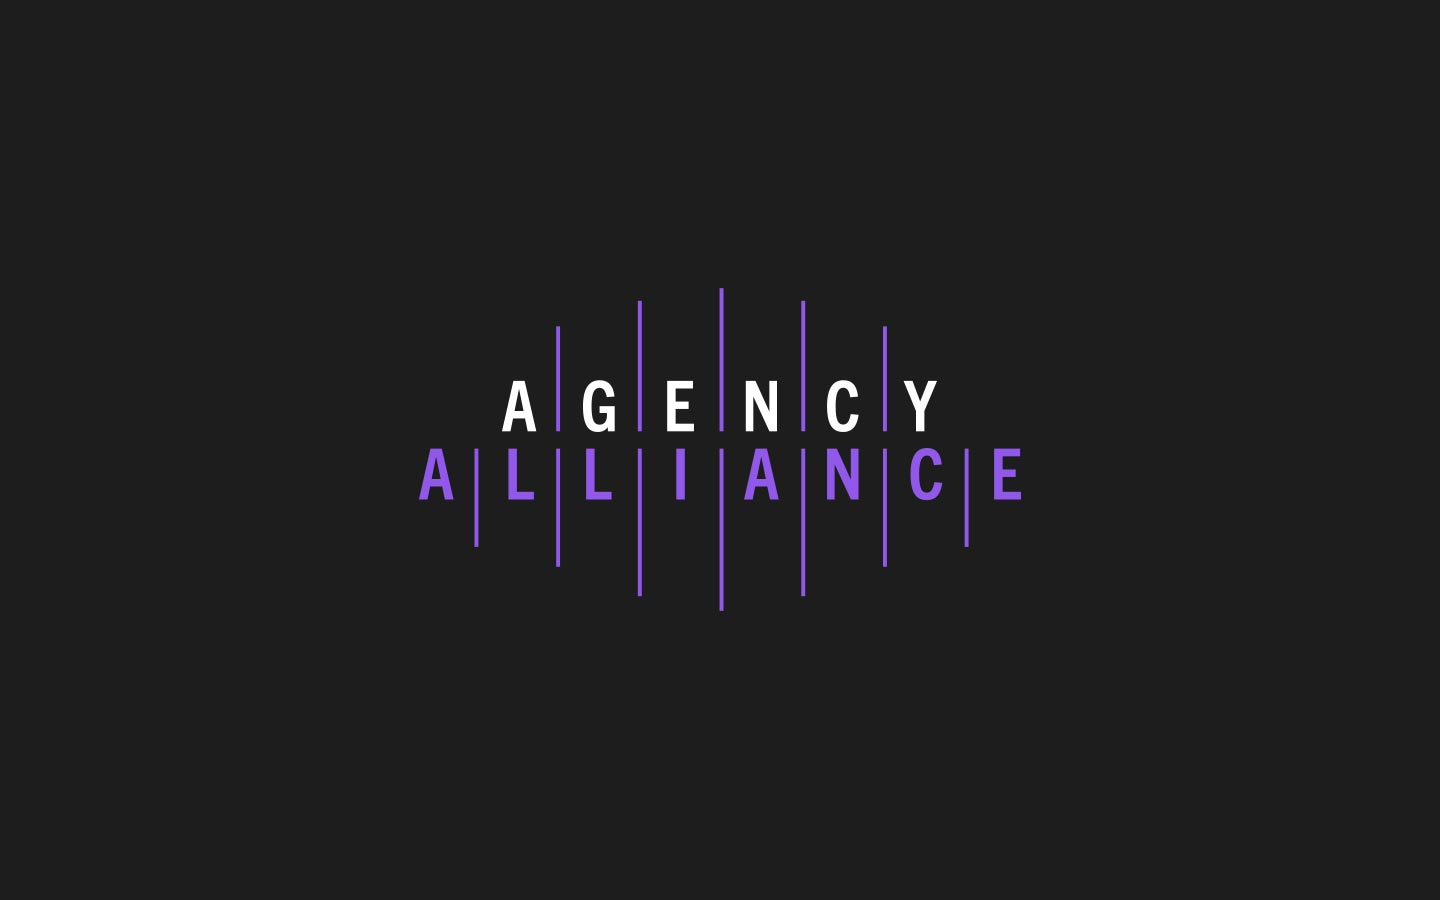 Agency alliance logo